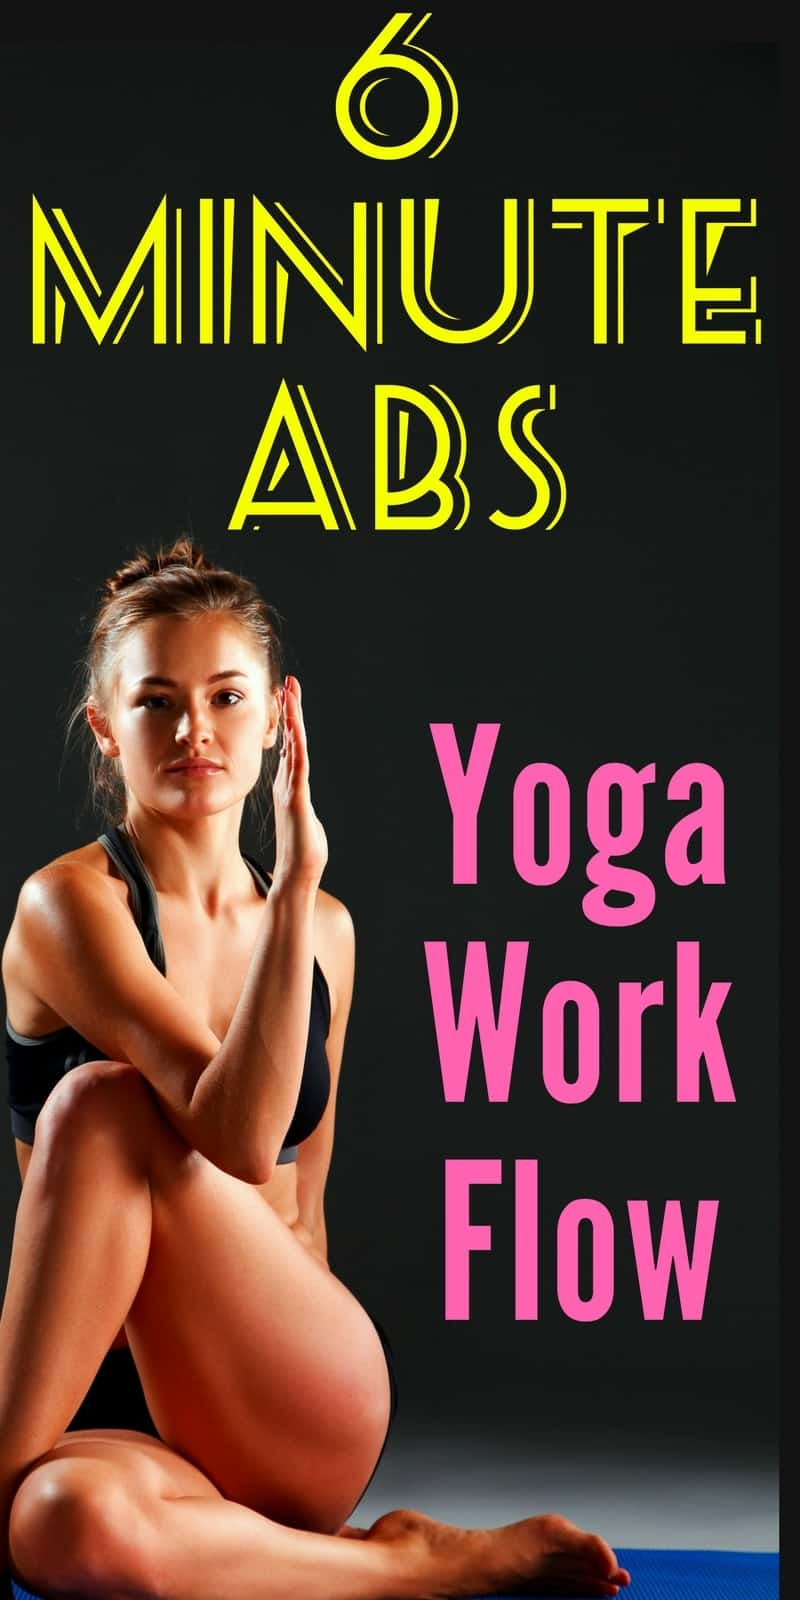 One of the other great benefits of yoga is that it can help you get strong and defined abs. If you're engaging them correctly and practicing proper form. | yoga meditation | yoga | yoga poses | yoga benefits | yoga positions | yoga for weight loss | yoga for beginners | yoga poses for beginners | yogi | pilates | yoga workout | yoga workouts | lose weight | weight loss | back pain |